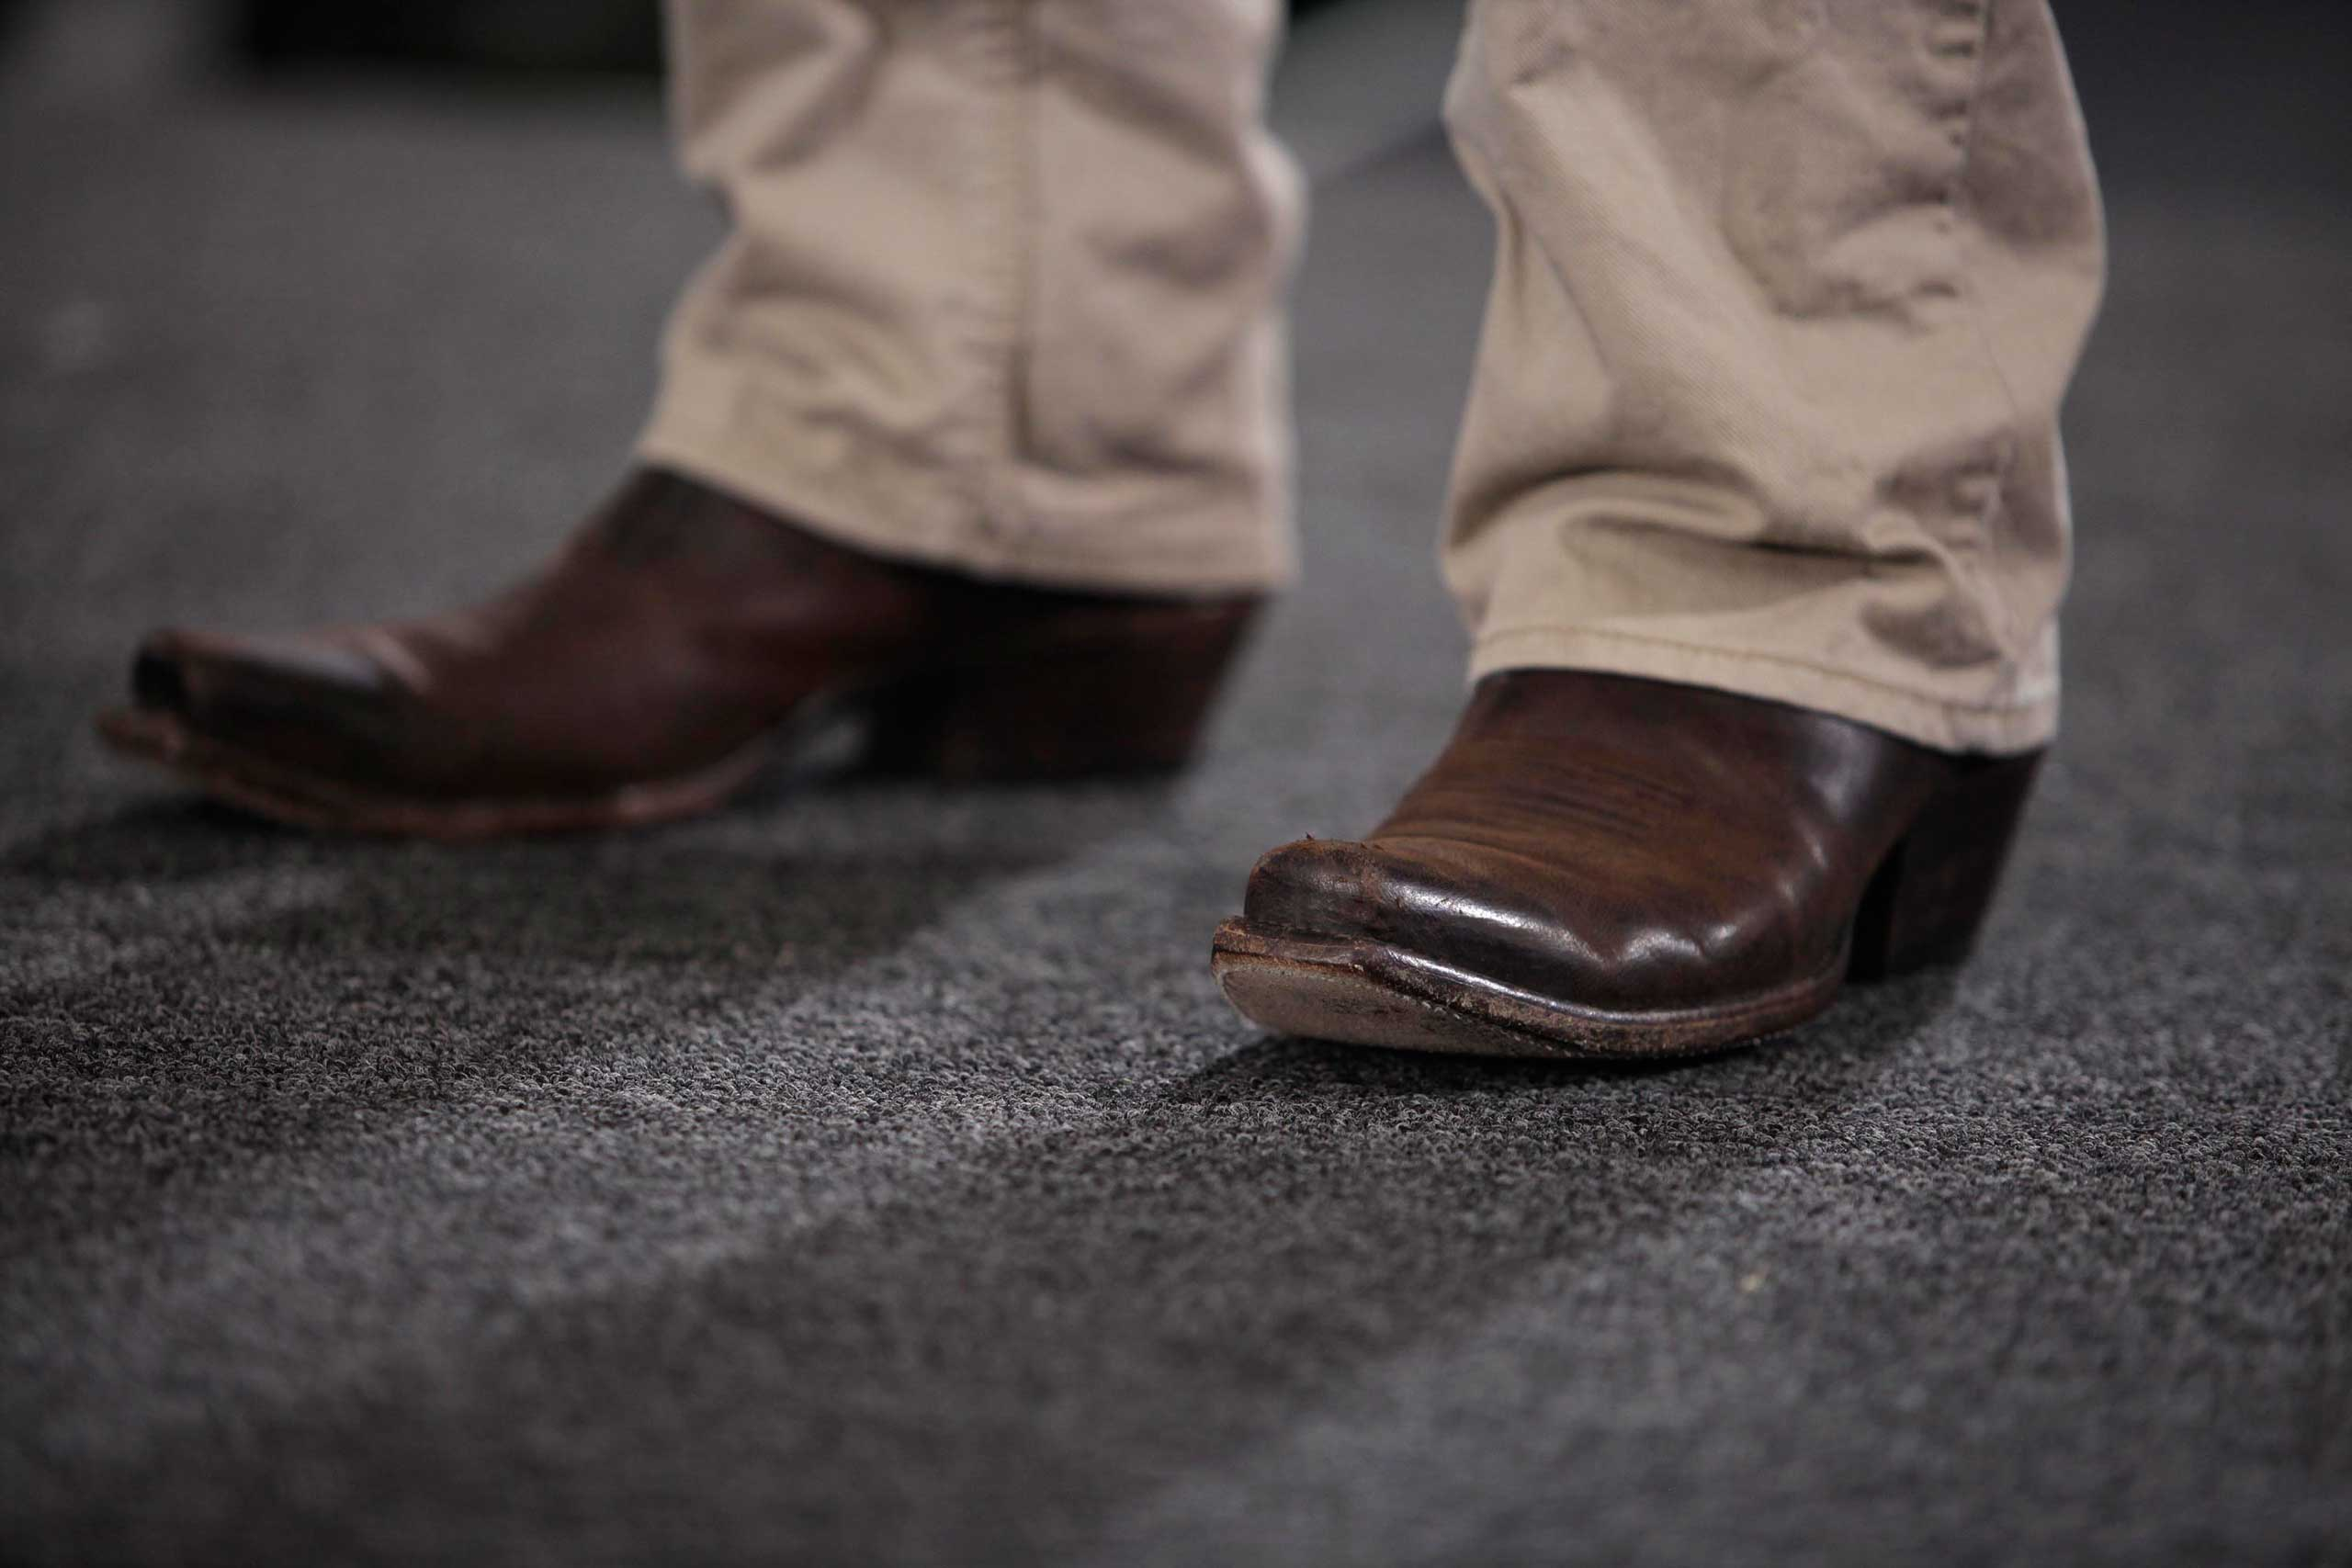 Even Rep. Paul Ryan of Wisconsin has been known to wear them.